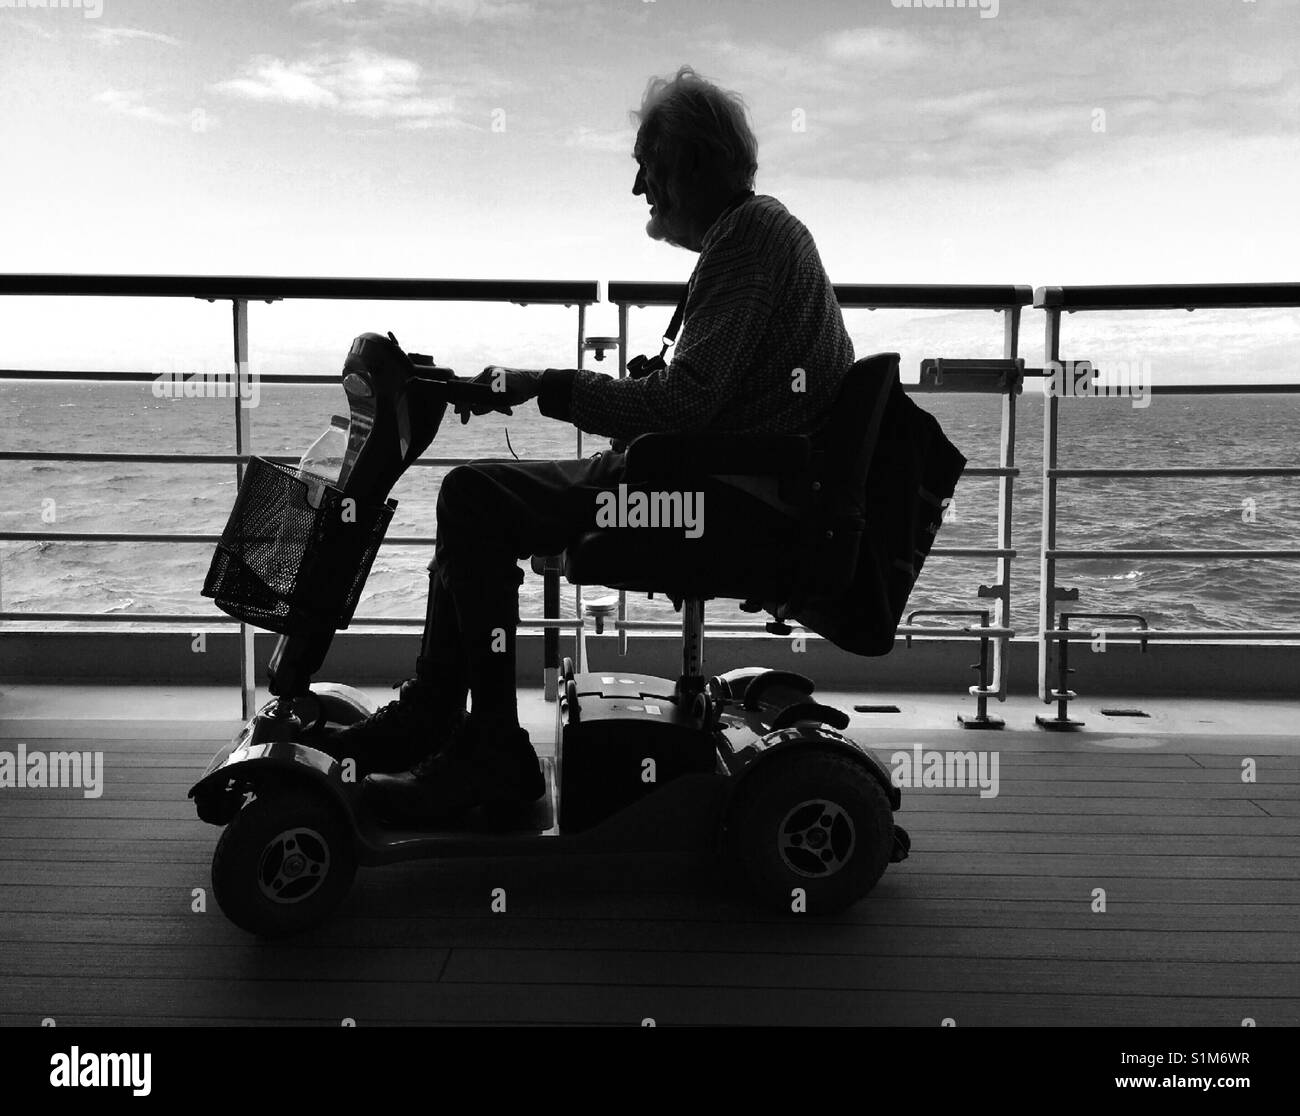 Disabled man on scooter on cruise ship - Stock Image